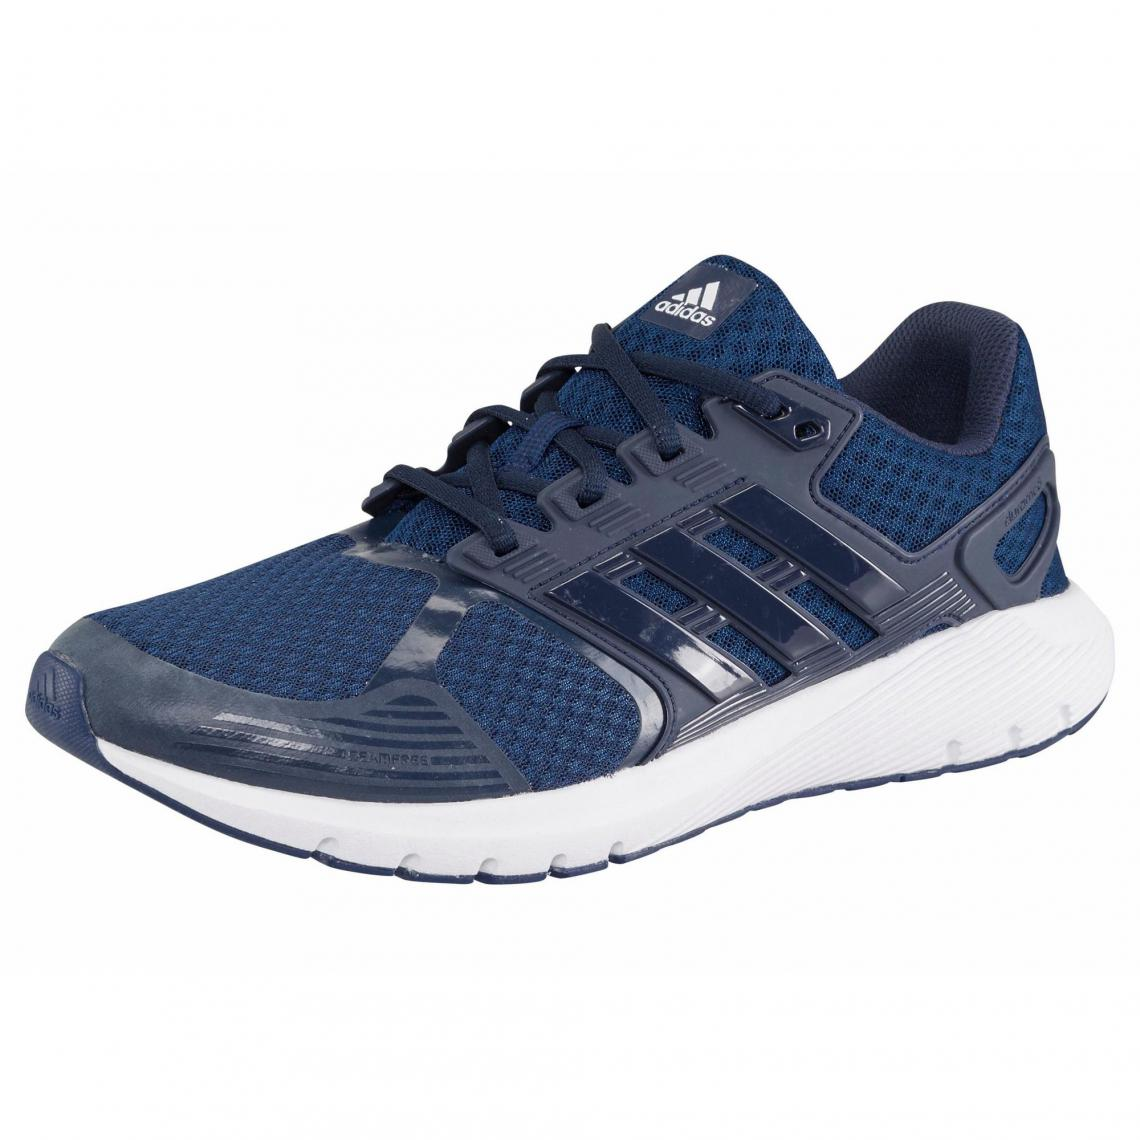 new arrival d8df4 22144 Chaussures de course homme Duramo 8 Trainer M adidas Performance - Bleu  Adidas Performance Homme